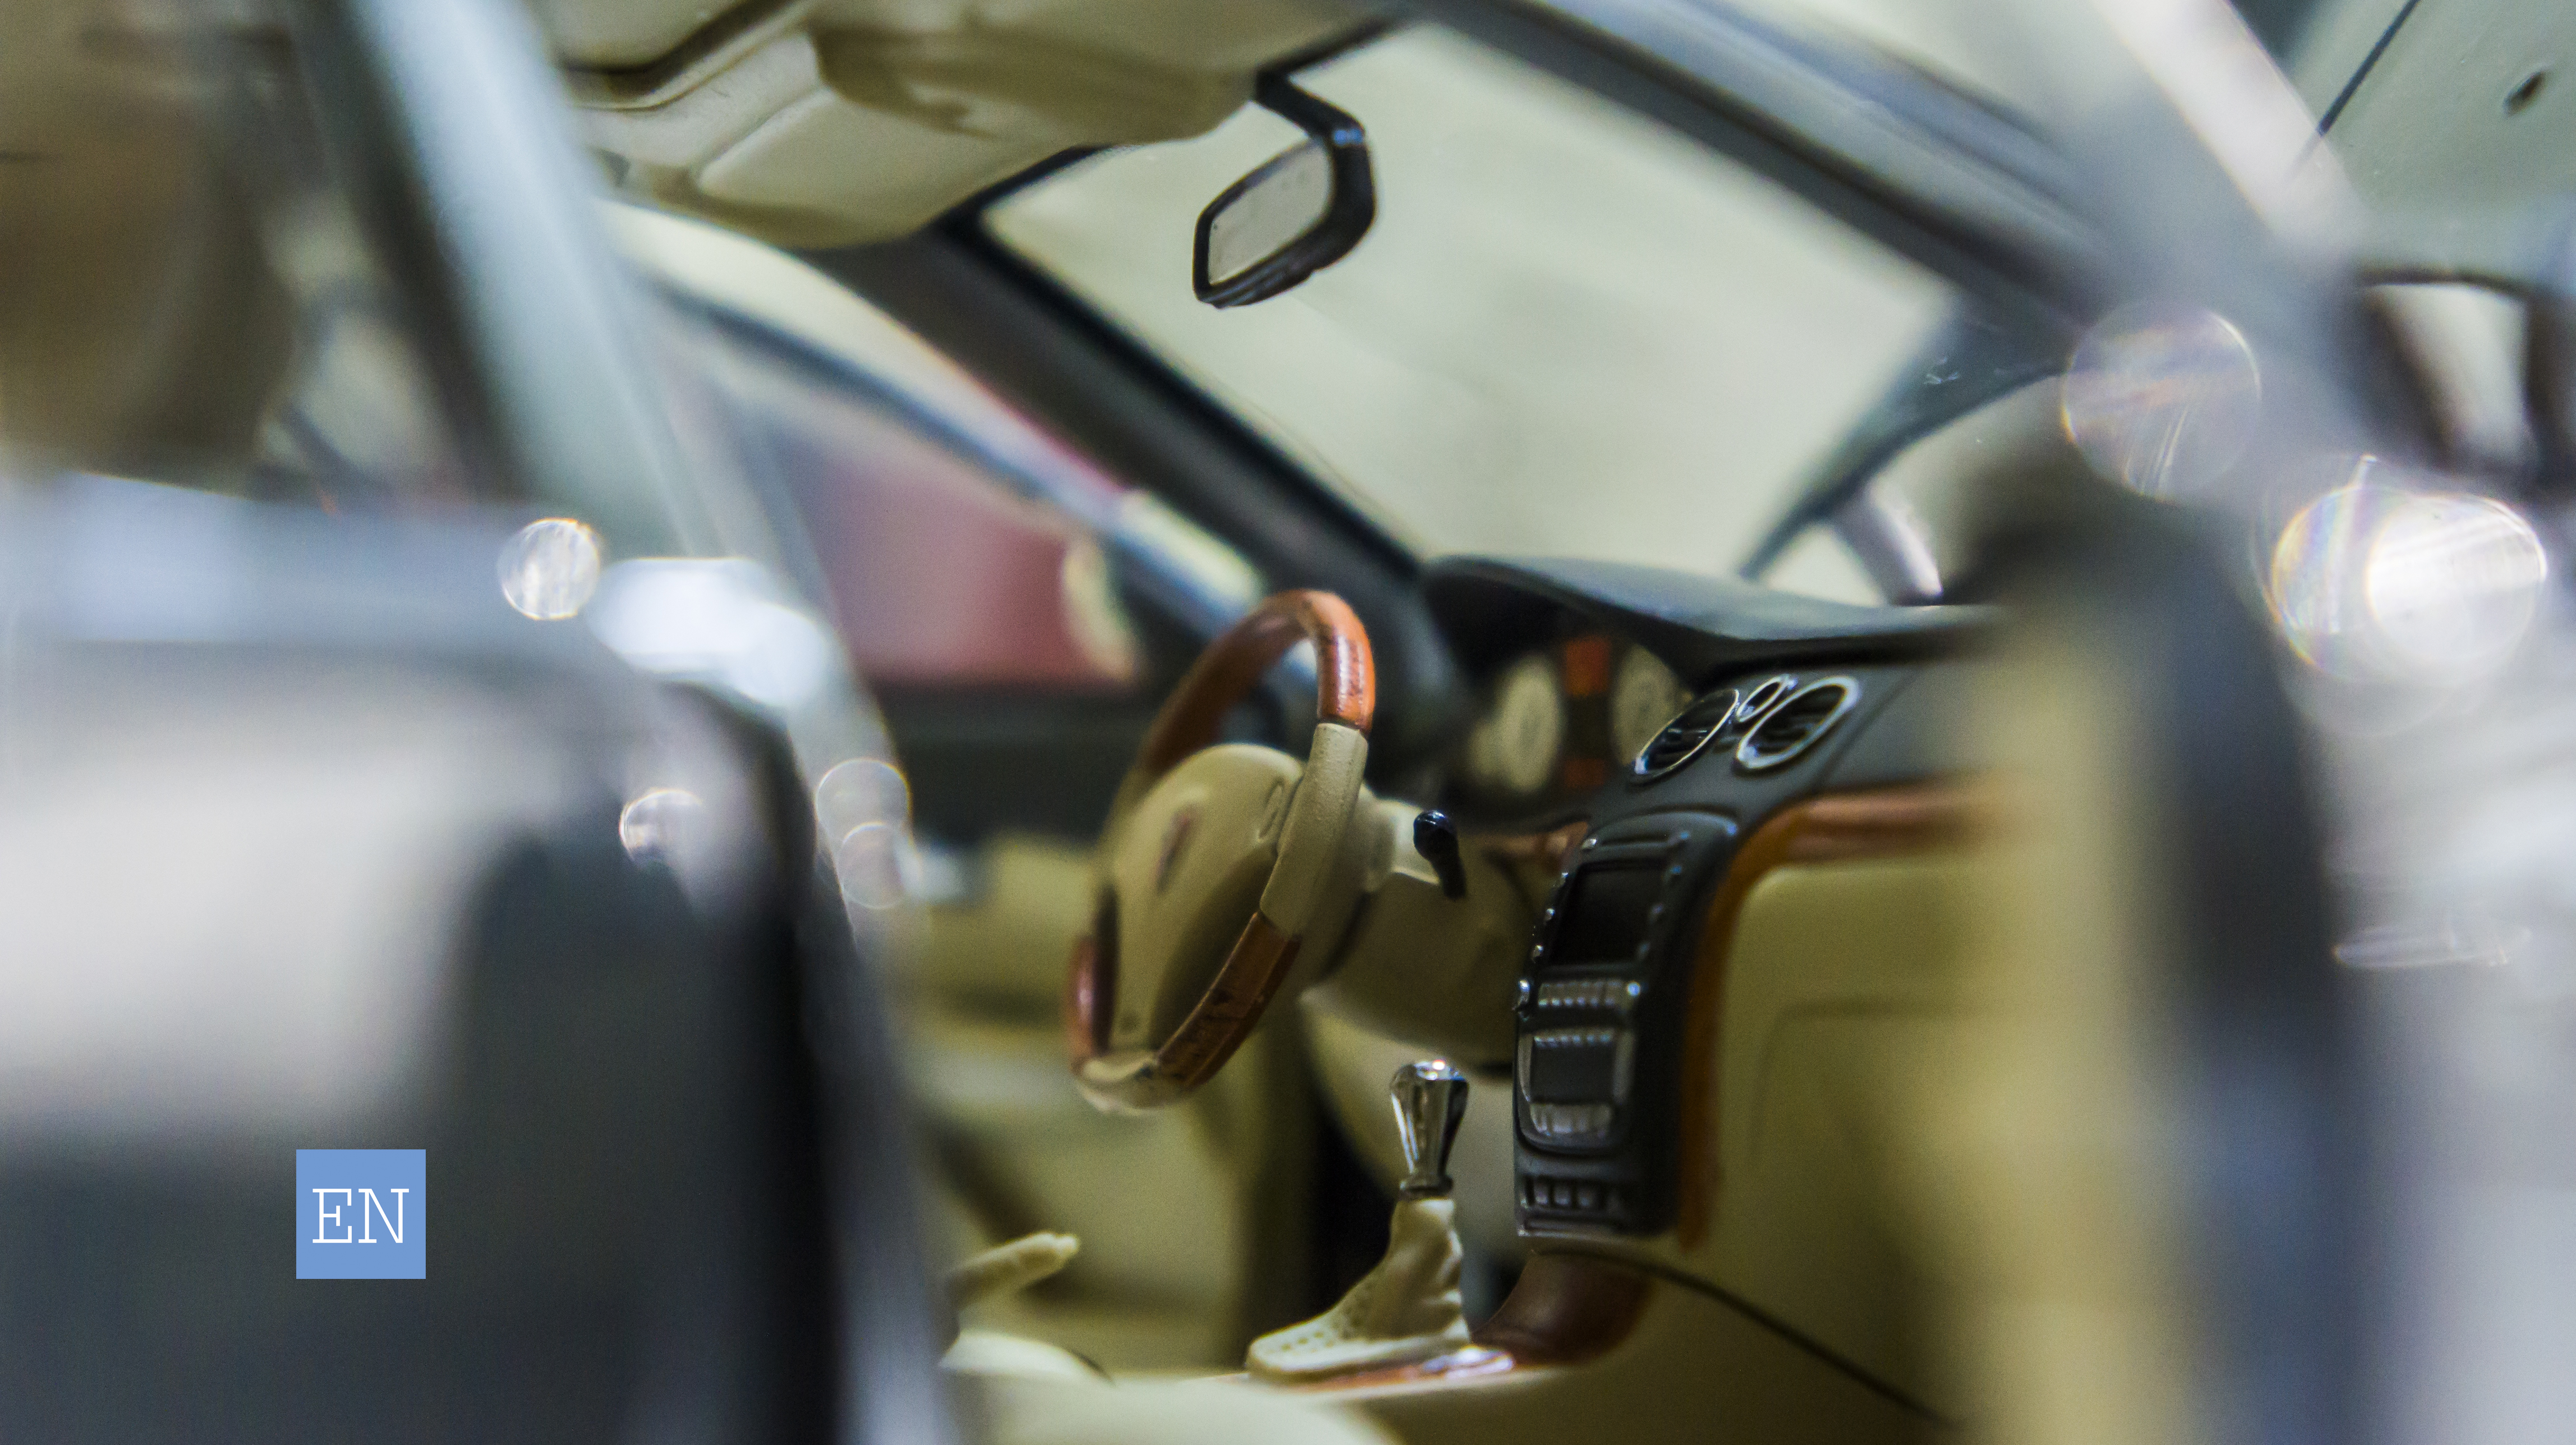 Roewe-750D - Model - Interior - Right Side - Low